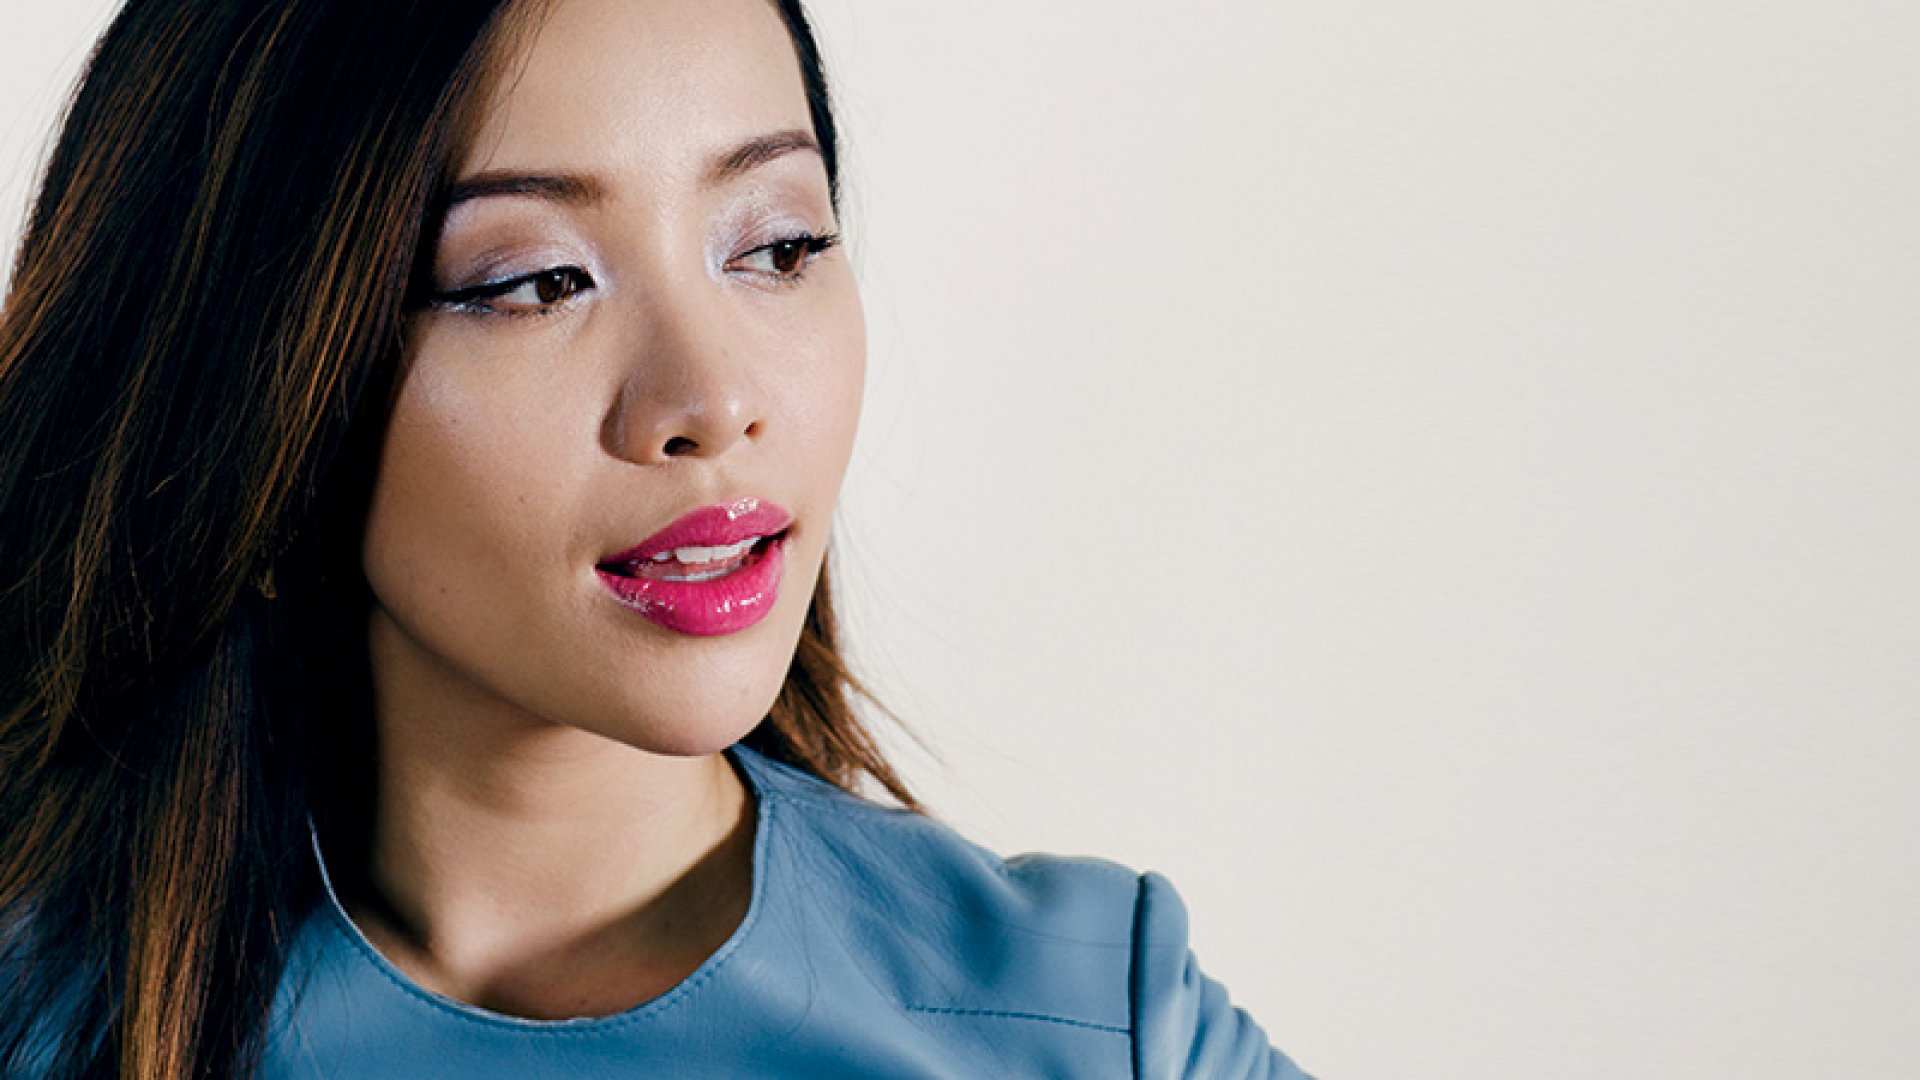 Michelle Phan is the co-founder of subscription makeup service Ipsy.